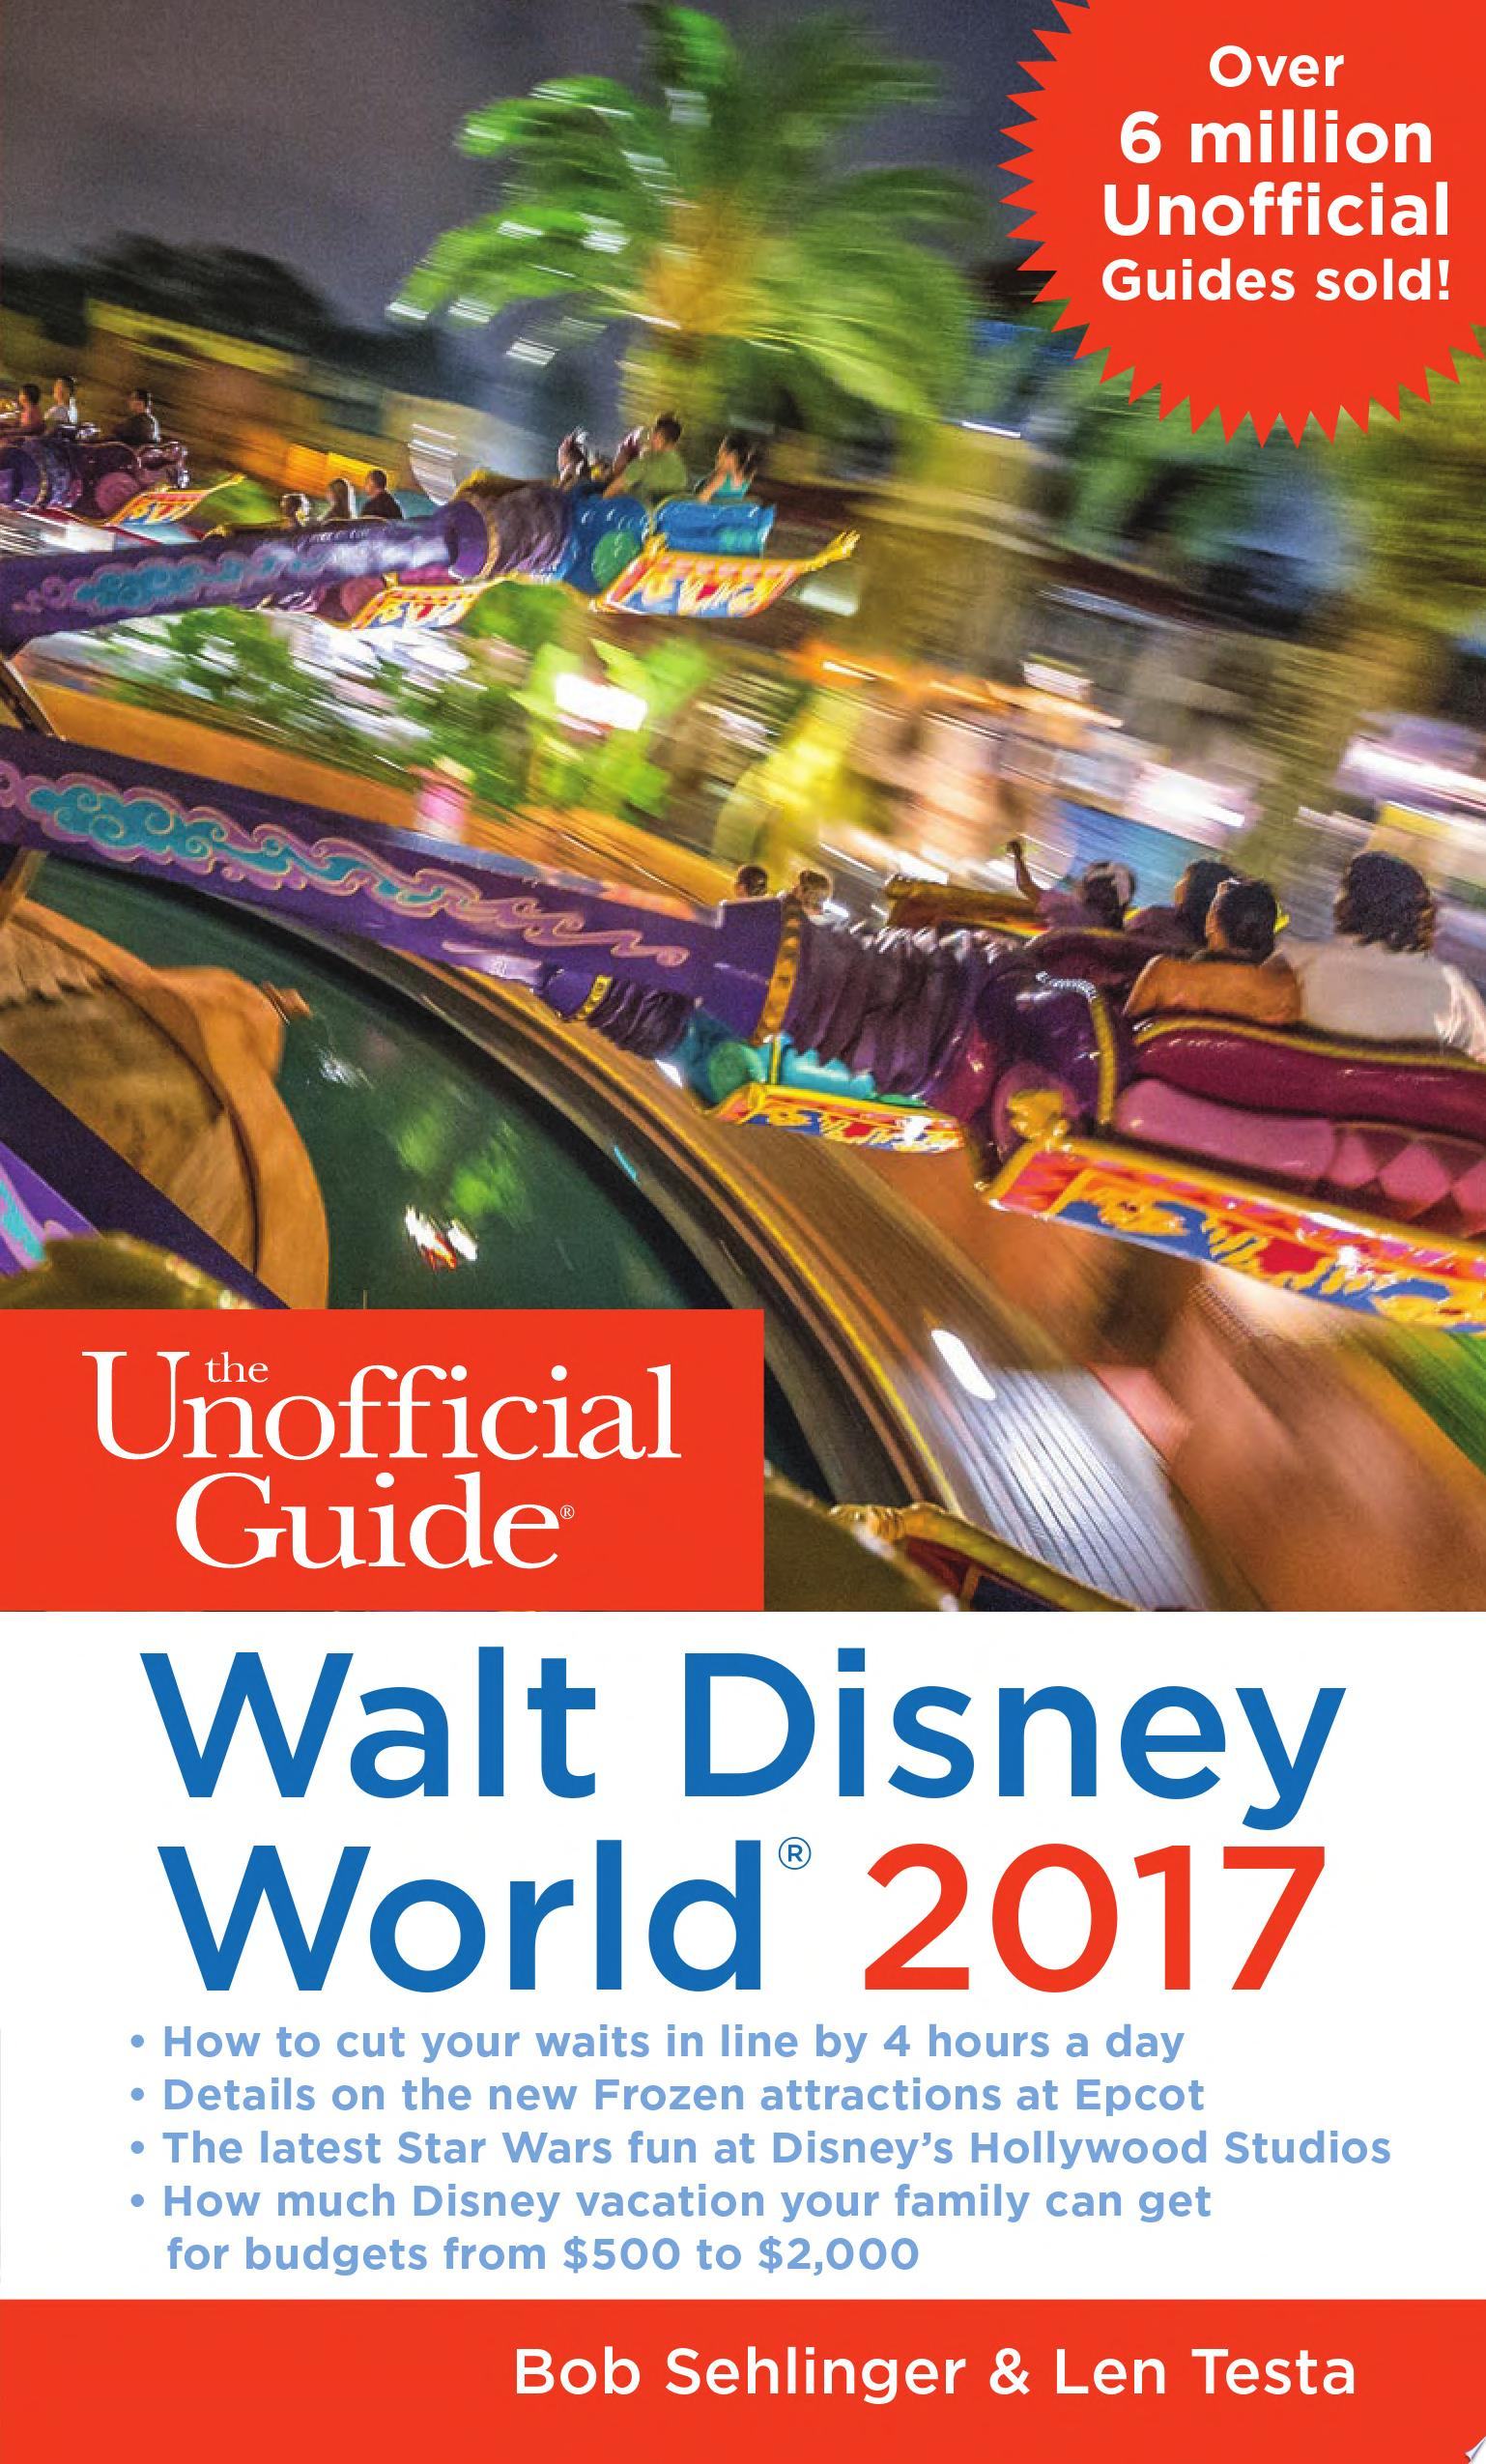 The Unofficial Guide to Walt Disney World 2017